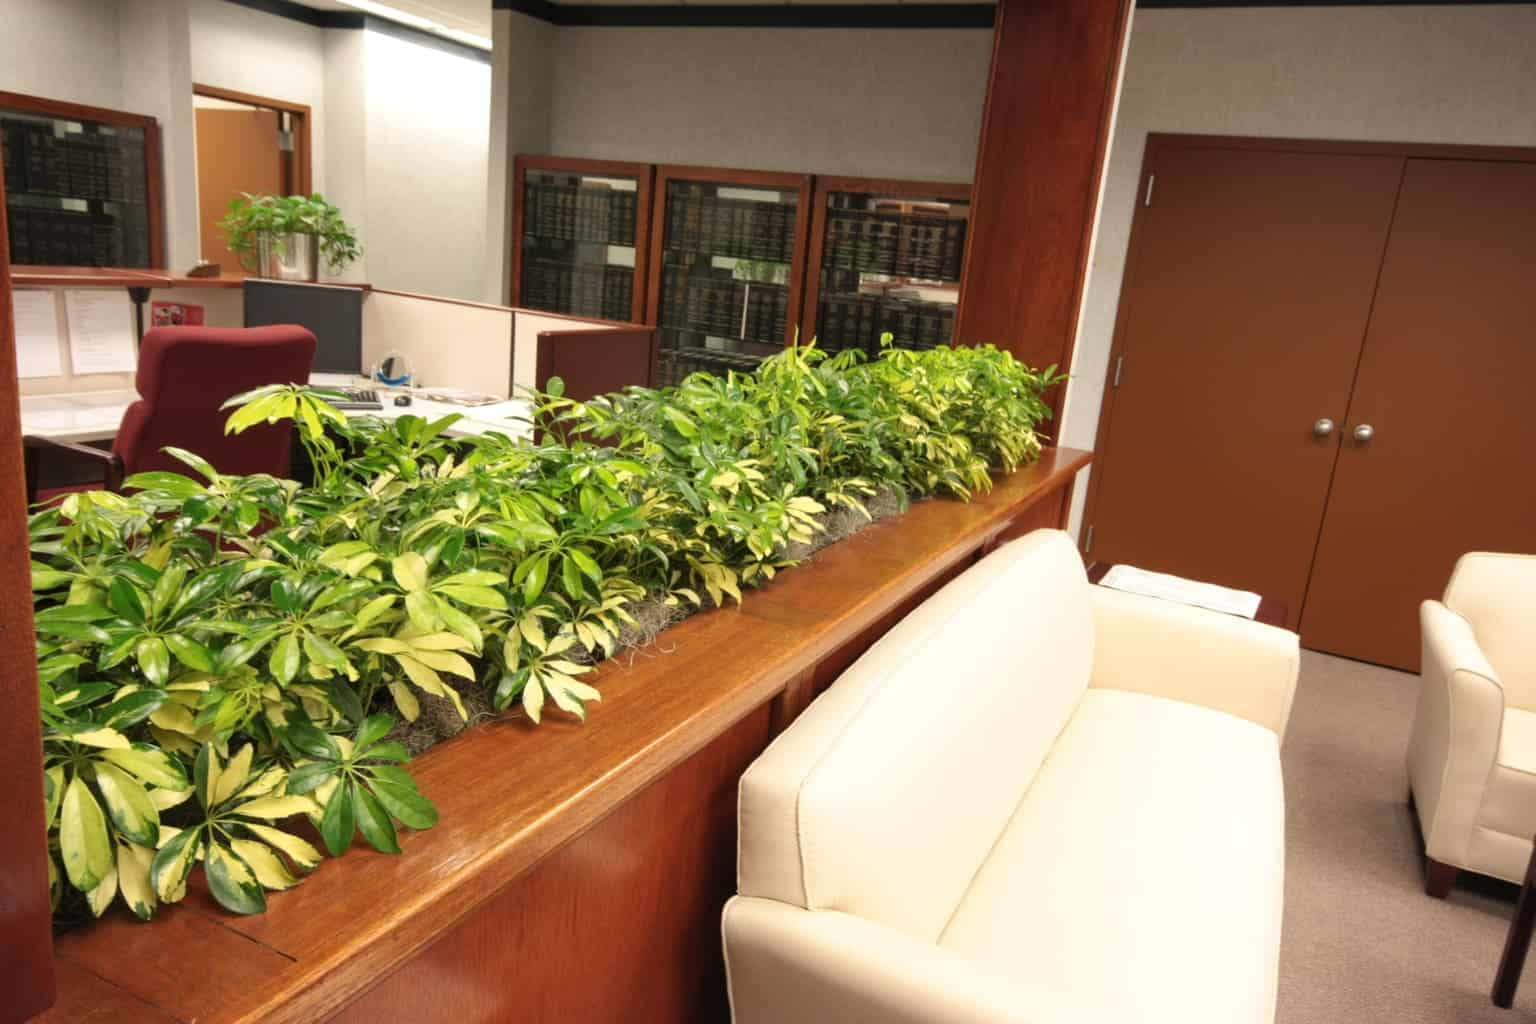 Envirogreenery interior plants office plants for for Interior designs with plants